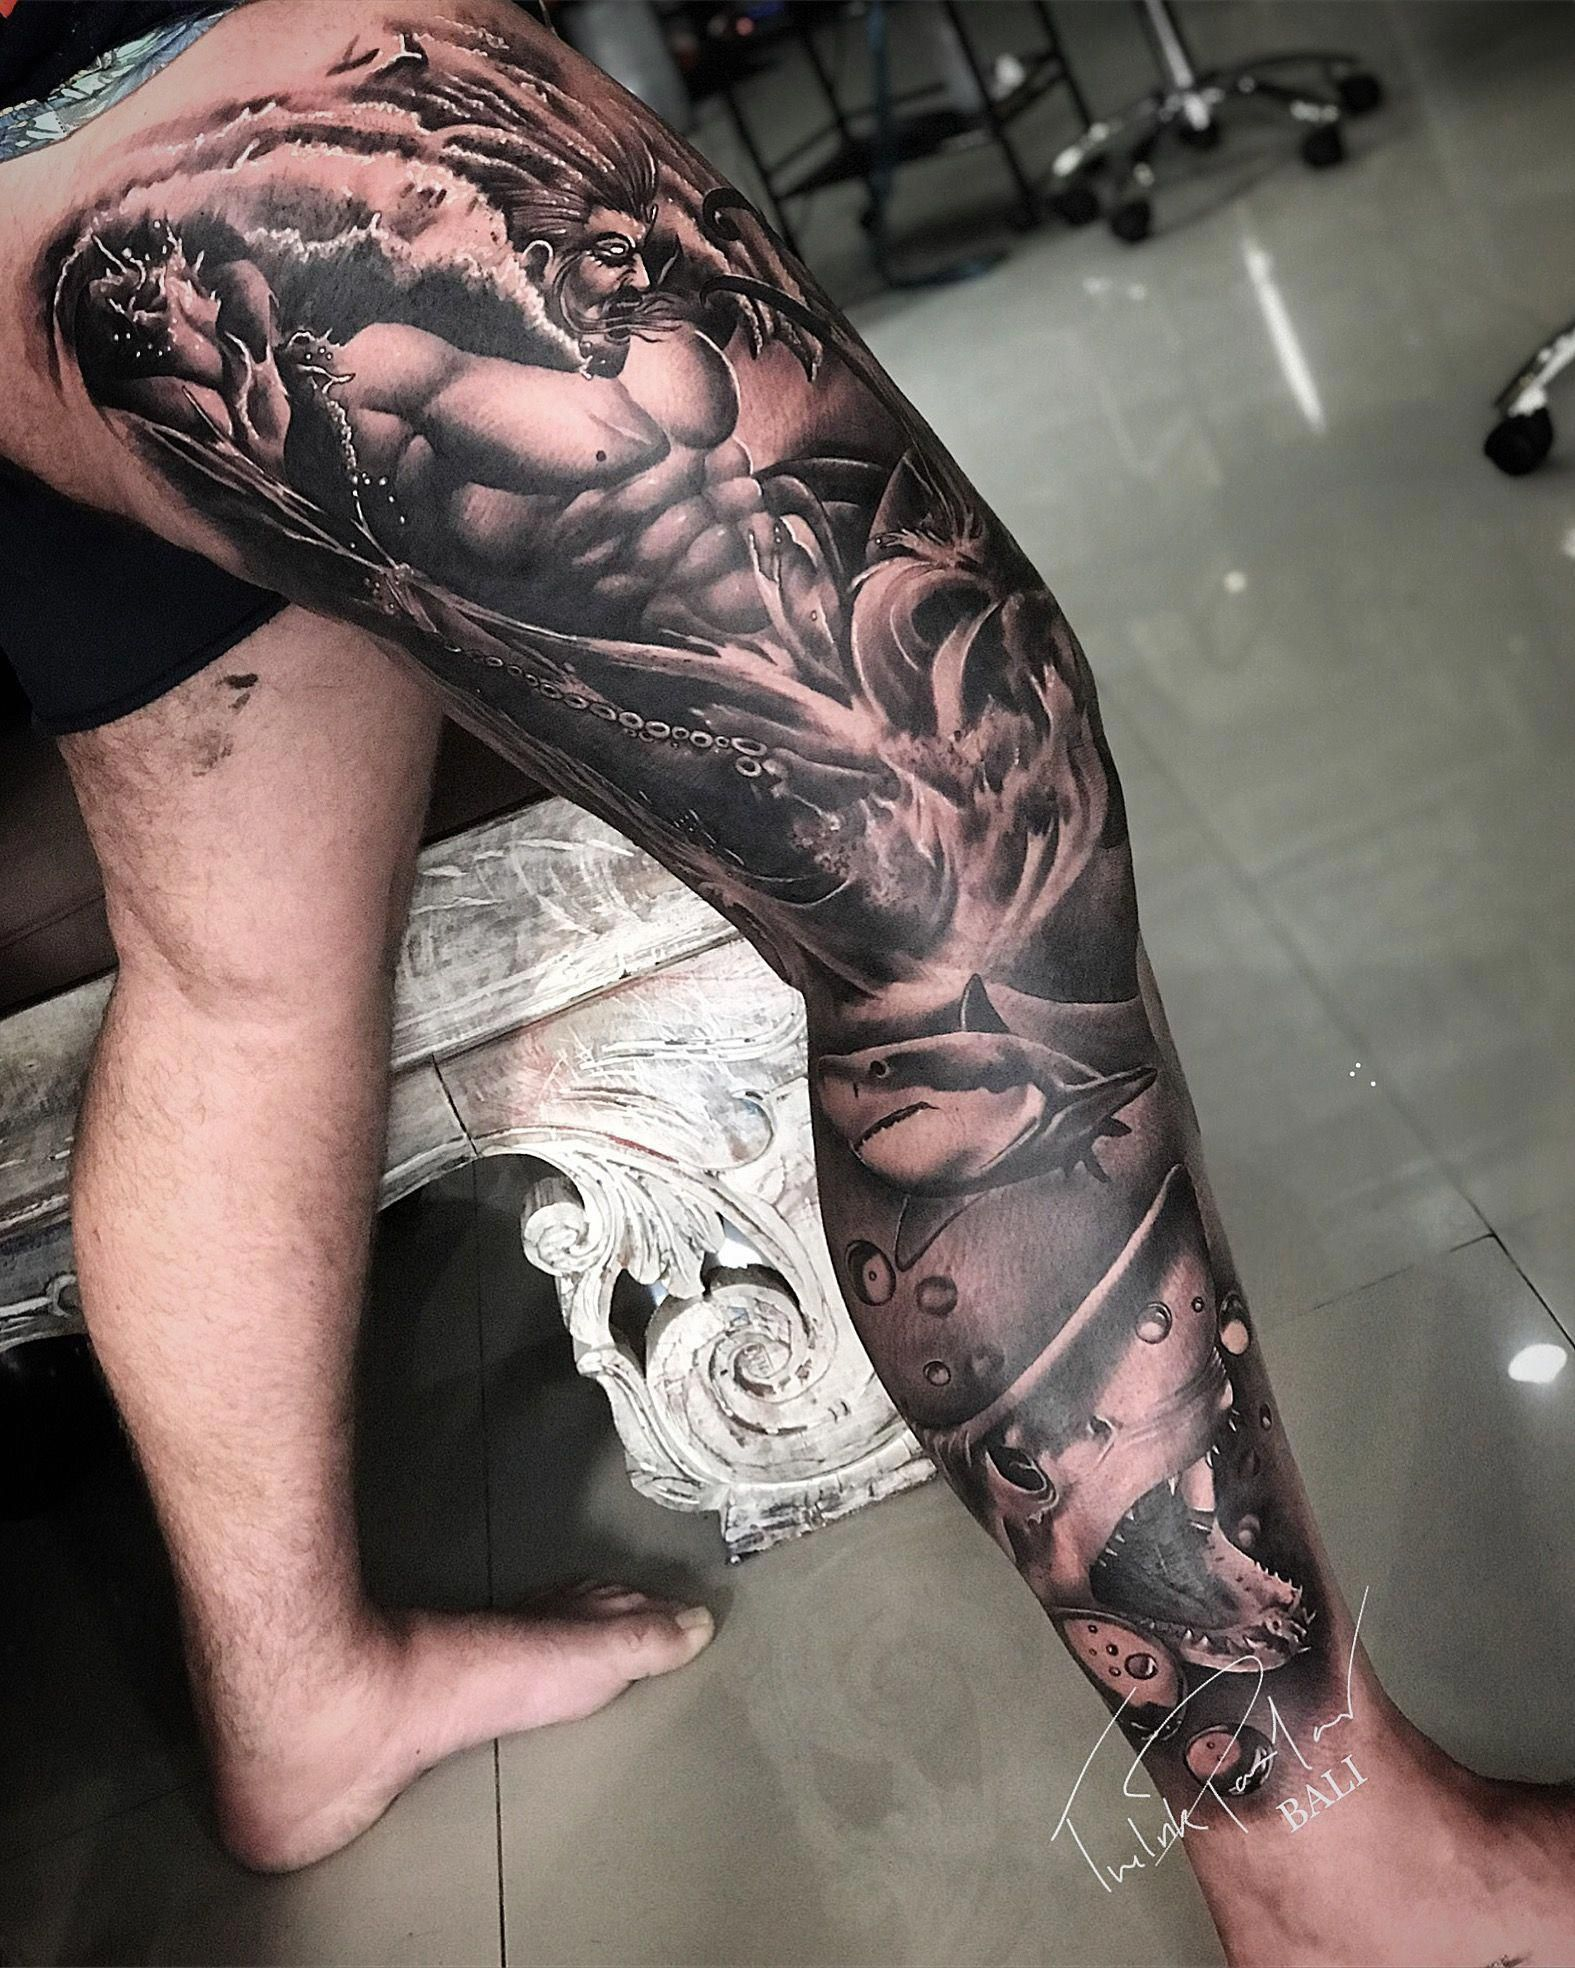 Tattoosformen Tattoos For Guys Half Sleeve Tattoos For Guys Leg Sleeve Tattoo